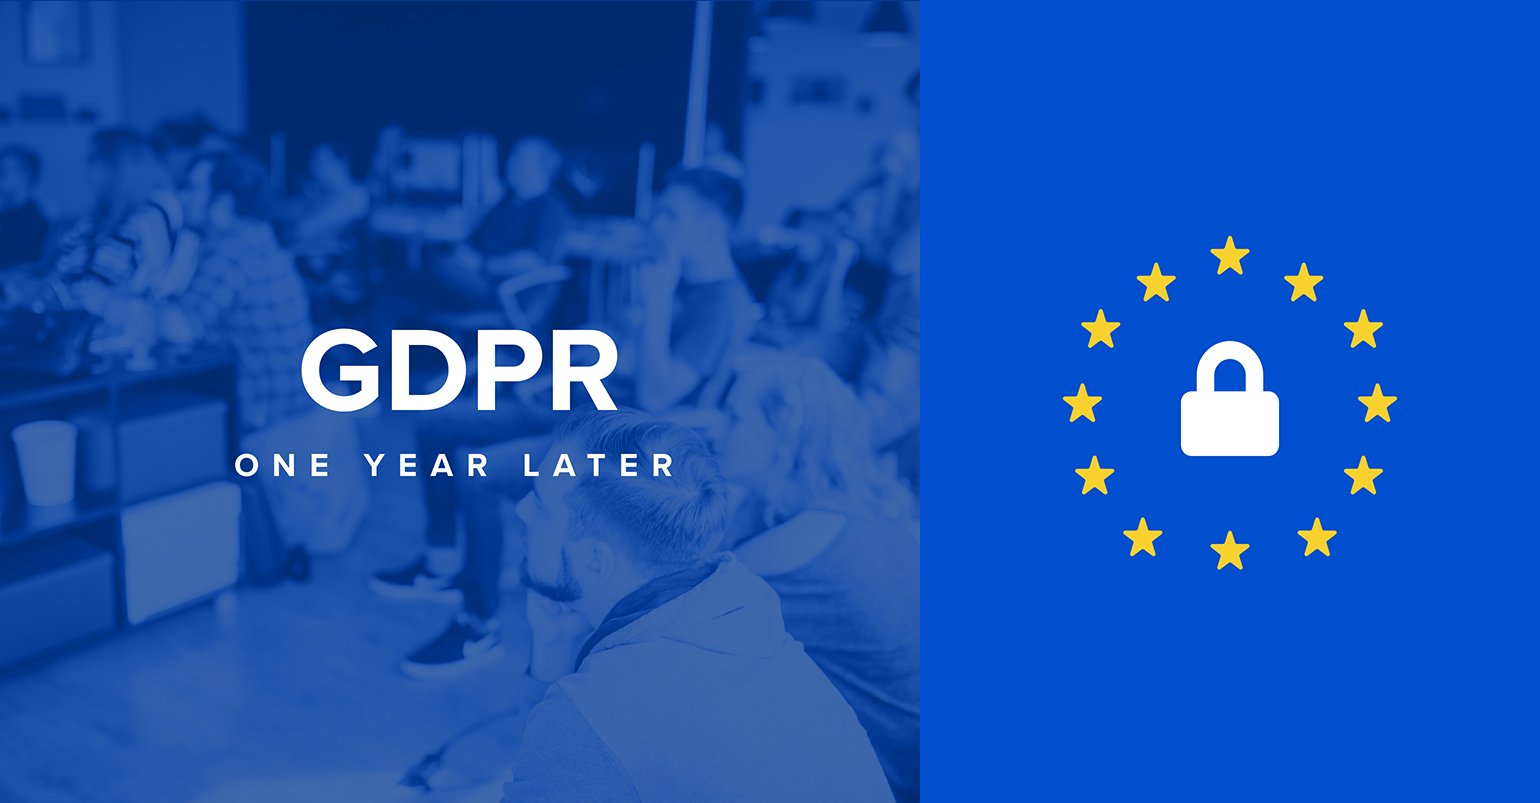 GDPR & email marketing after one year: what it means for you